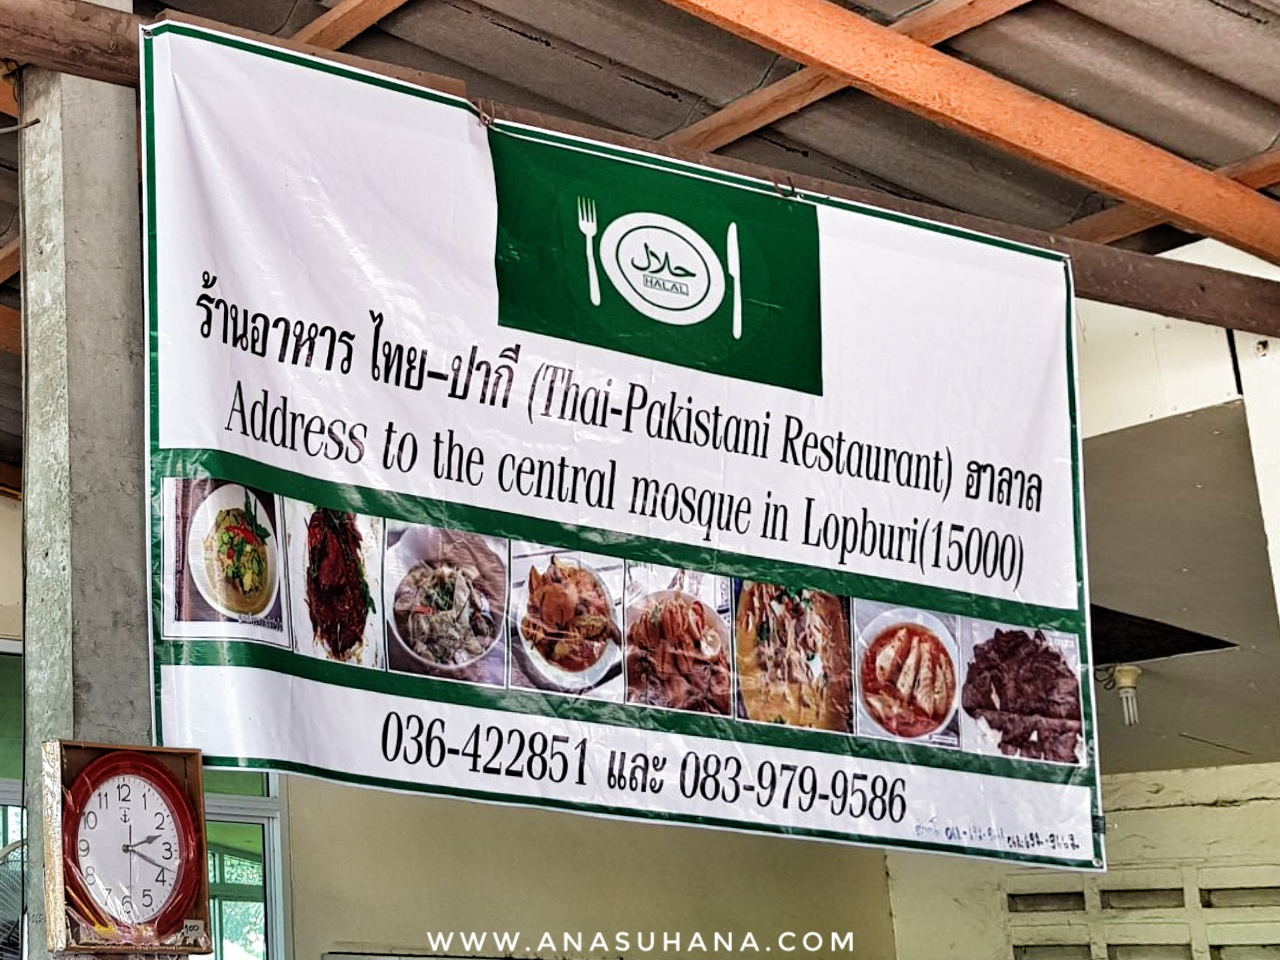 Thai-Pakistani Restaurant Lopburi